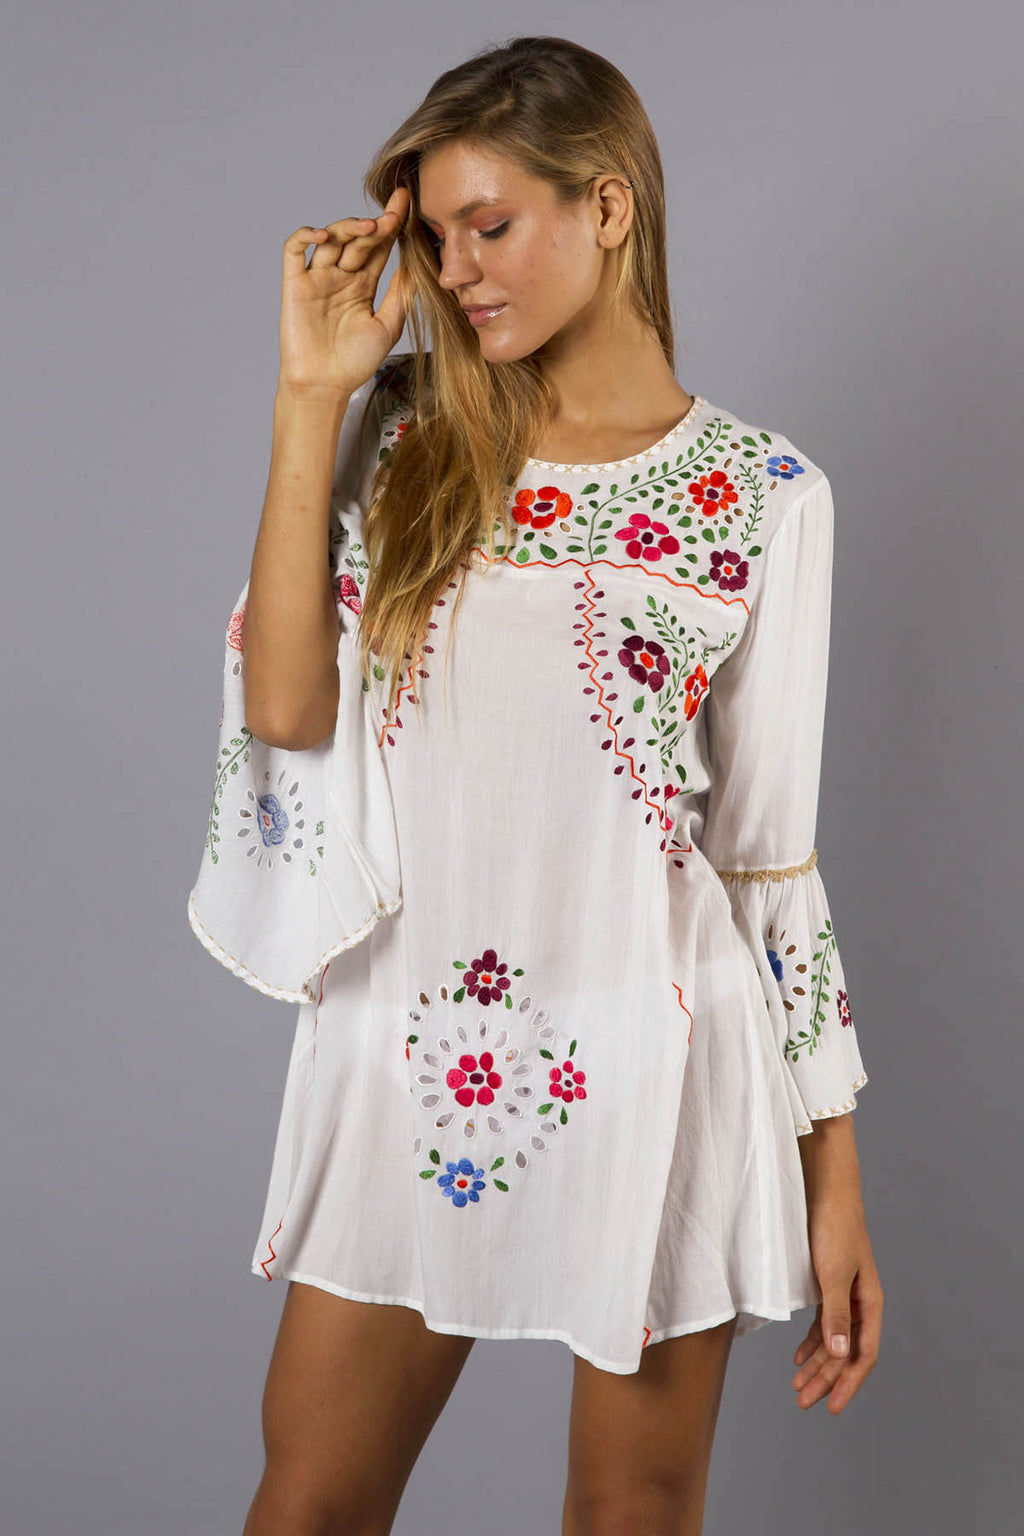 'WOODSTOCK' MINI DRESS